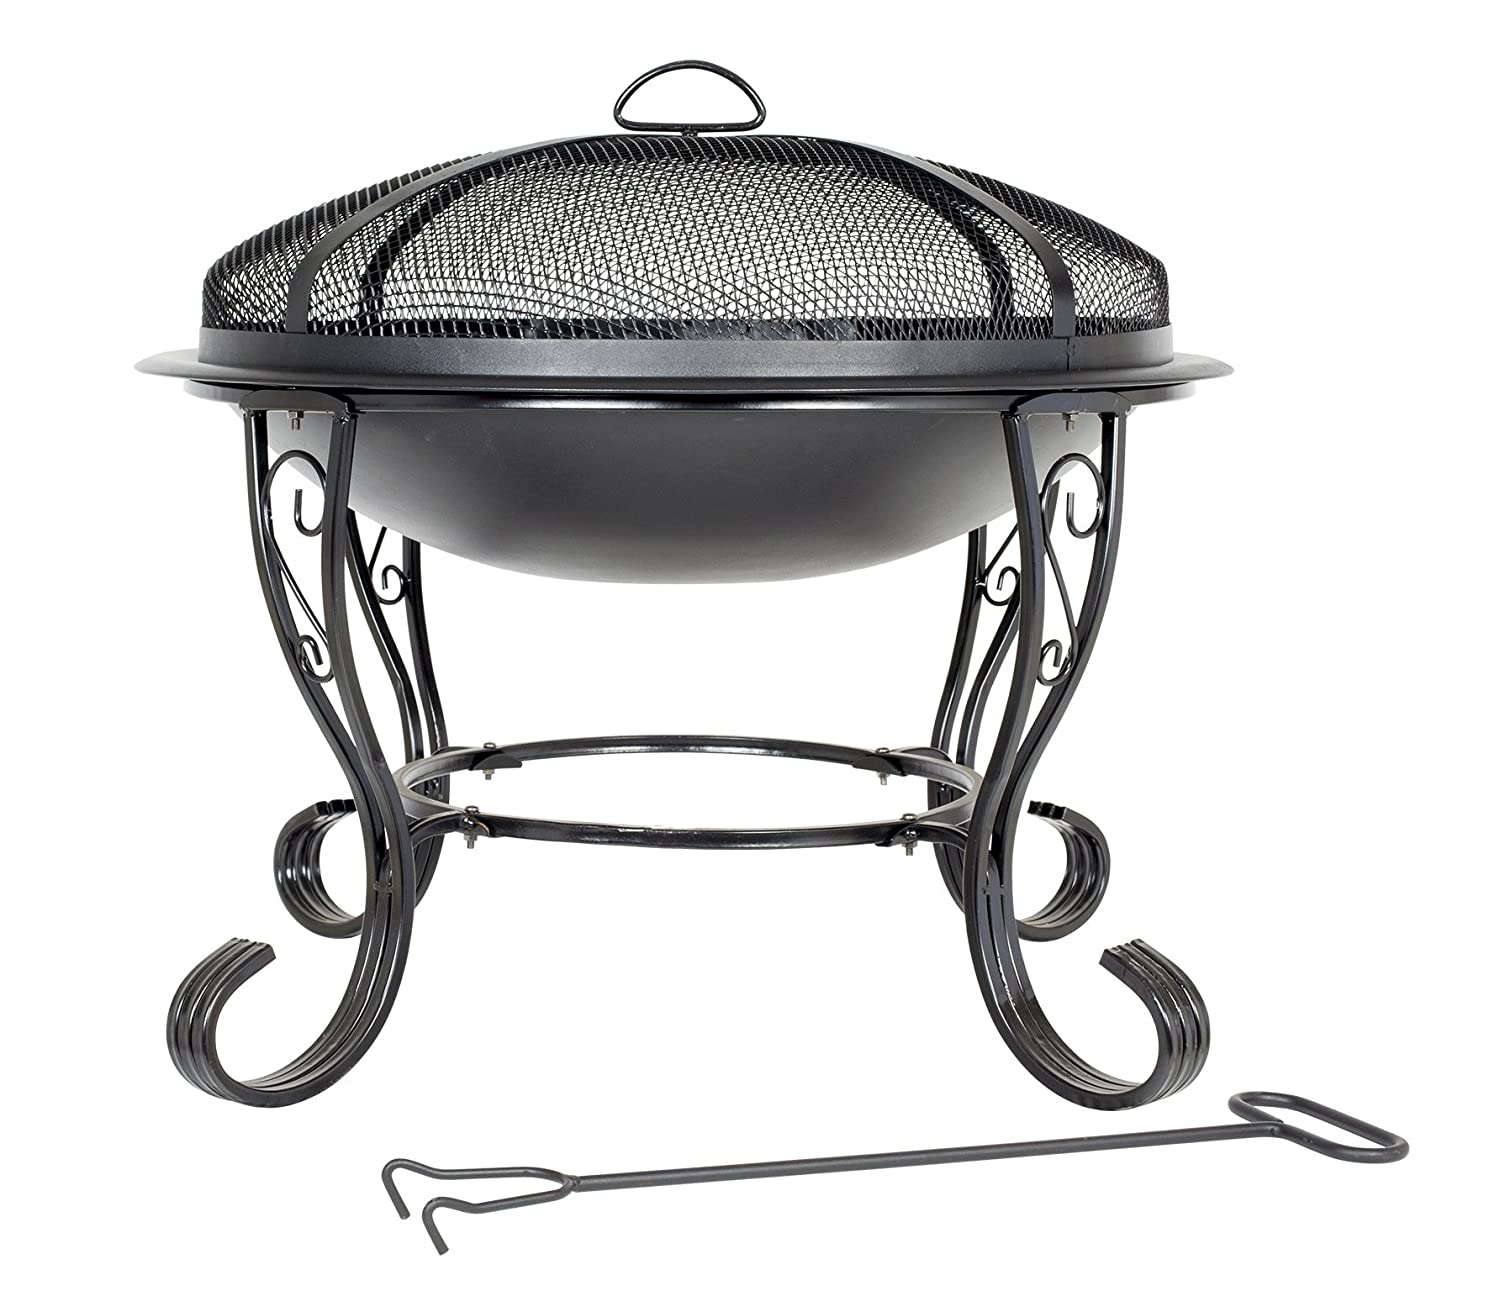 black steel firebowl with mesh cover 61cm high by buchanan amazon